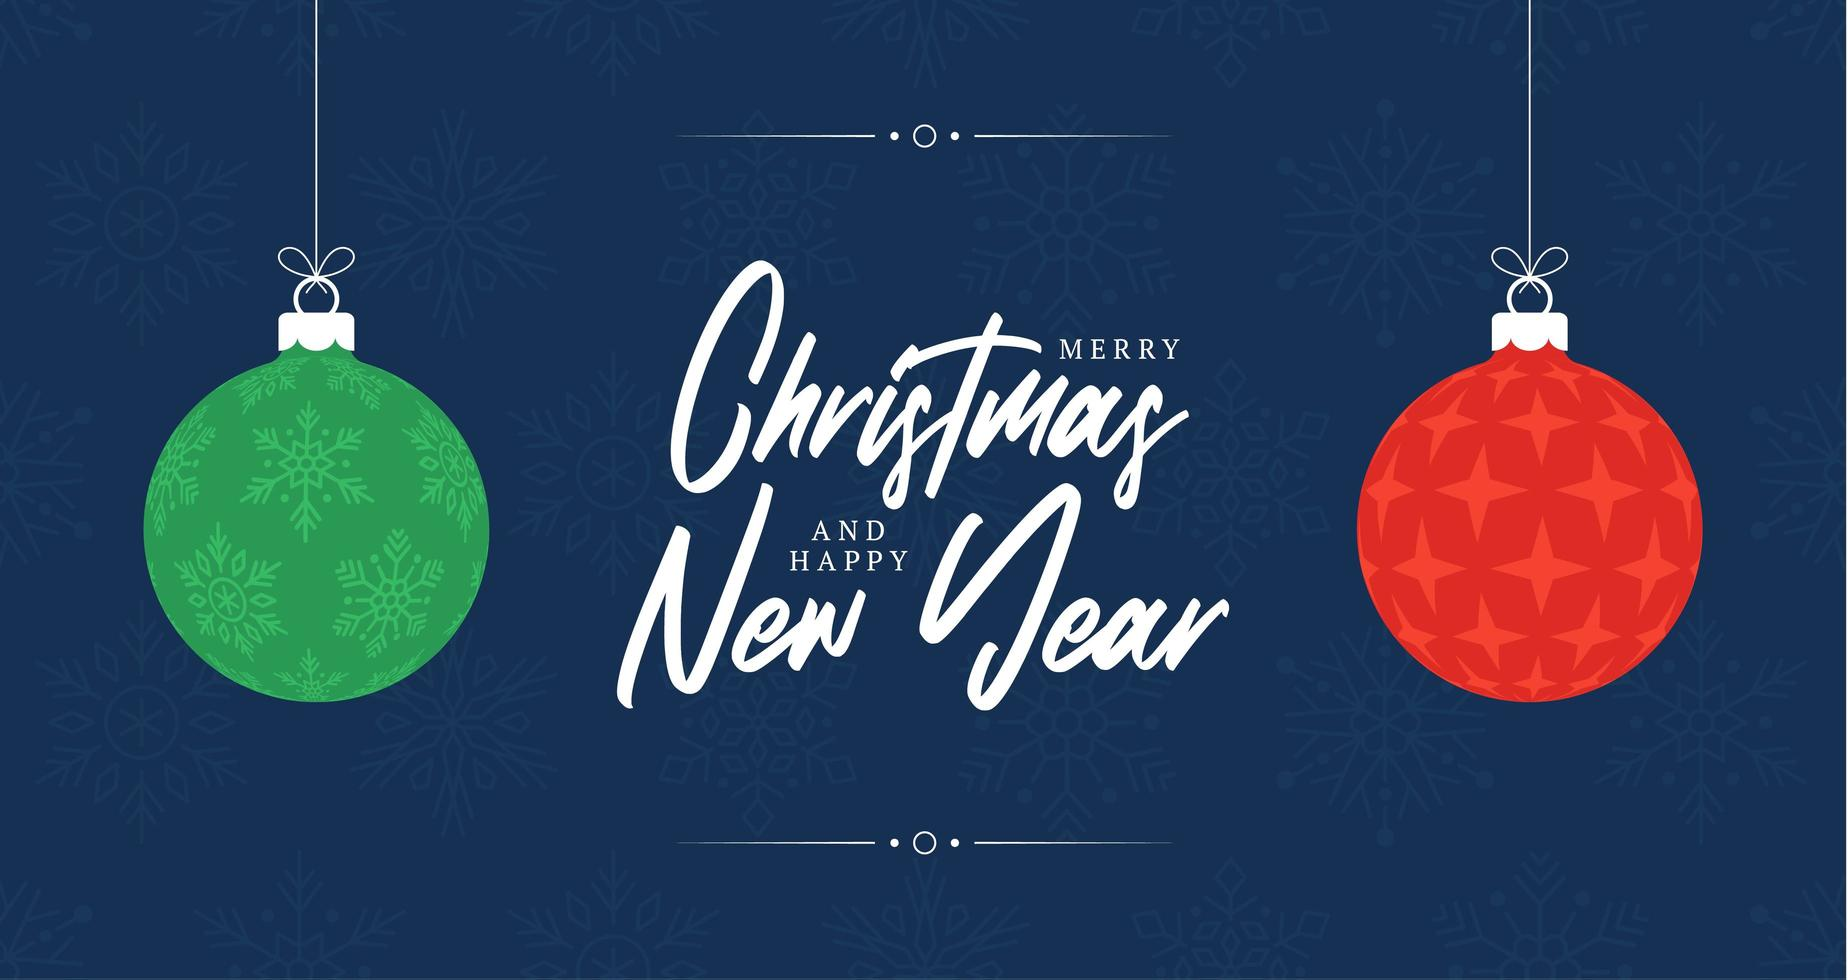 Christmas greeting Card. Retro Christmas or New Year card with two balls red and green color with star shape and snowflake inside. Vector illustration in flat style